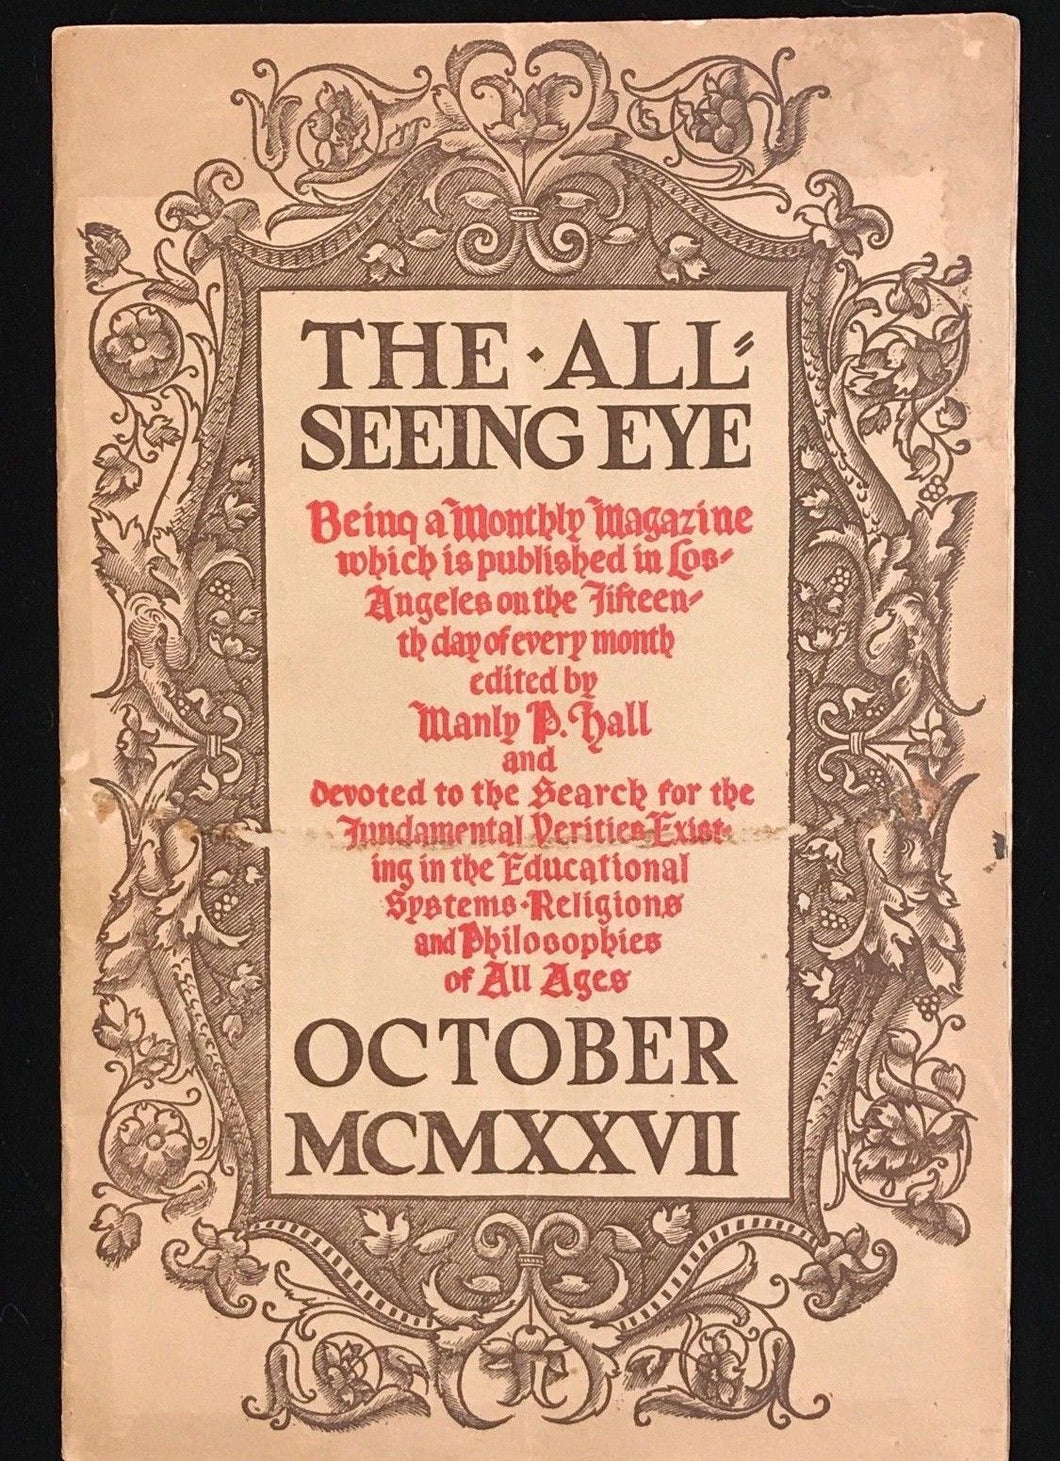 MANLY P. HALL - THE ALL-SEEING EYE, 1927 - OCCULT MYSTICISM SPIRITISM MAGAZINE